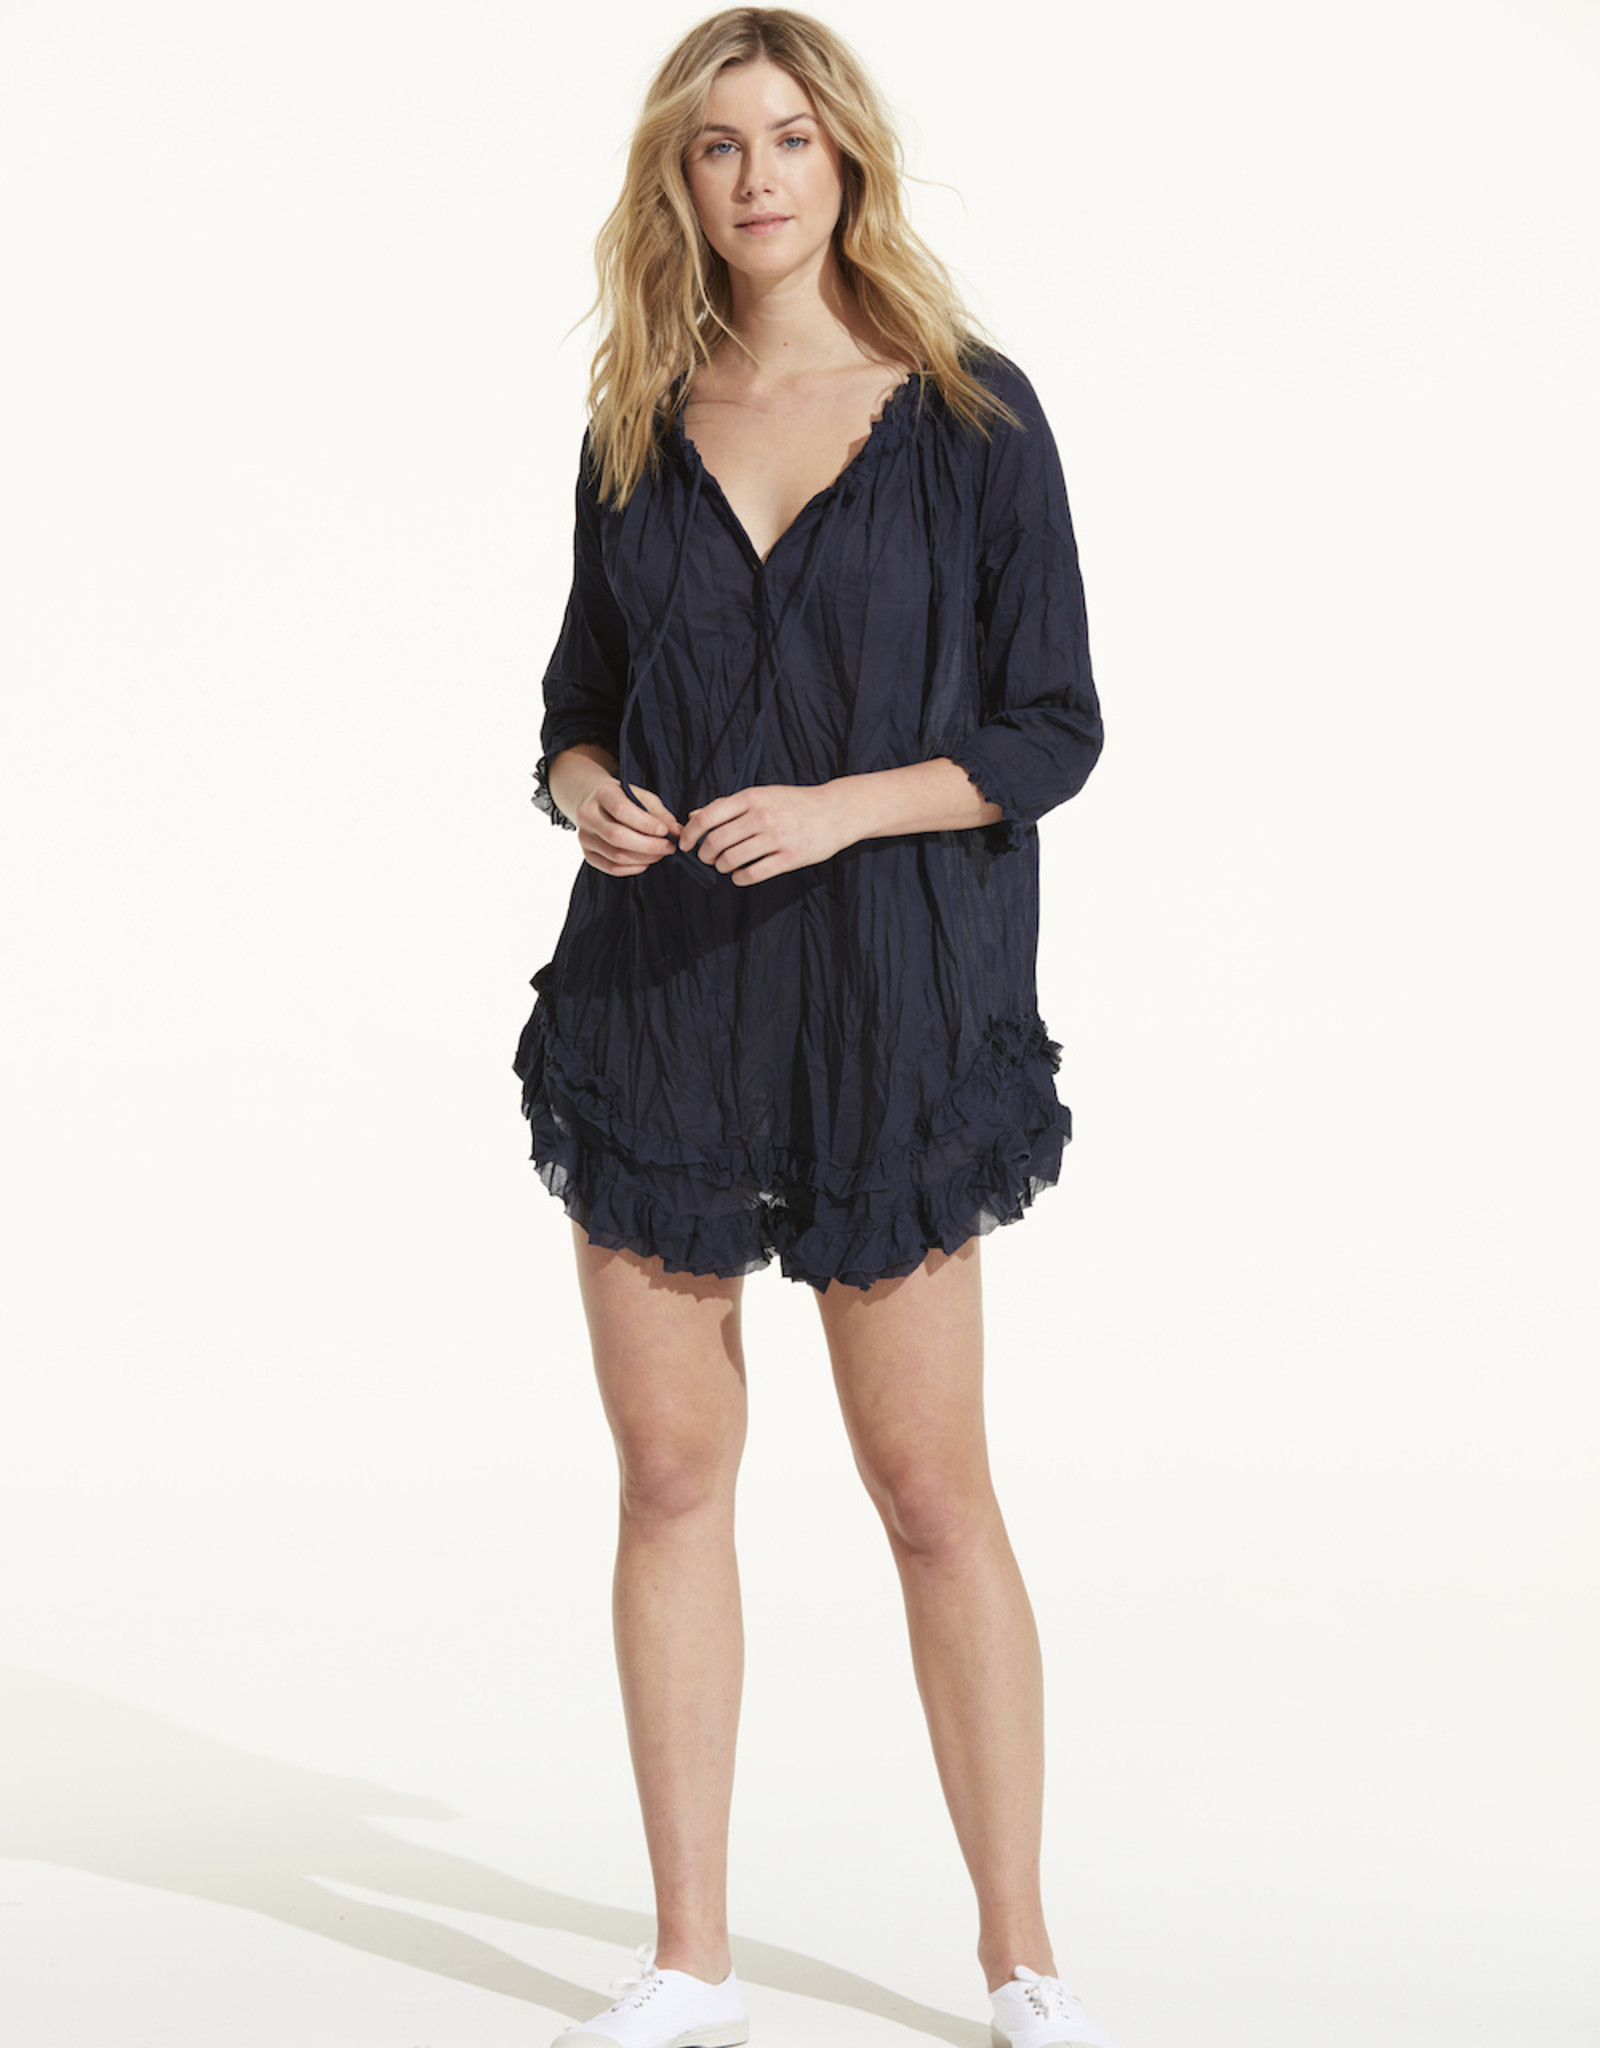 ONESEASON FRILLY EMBROIDERIES NAVY